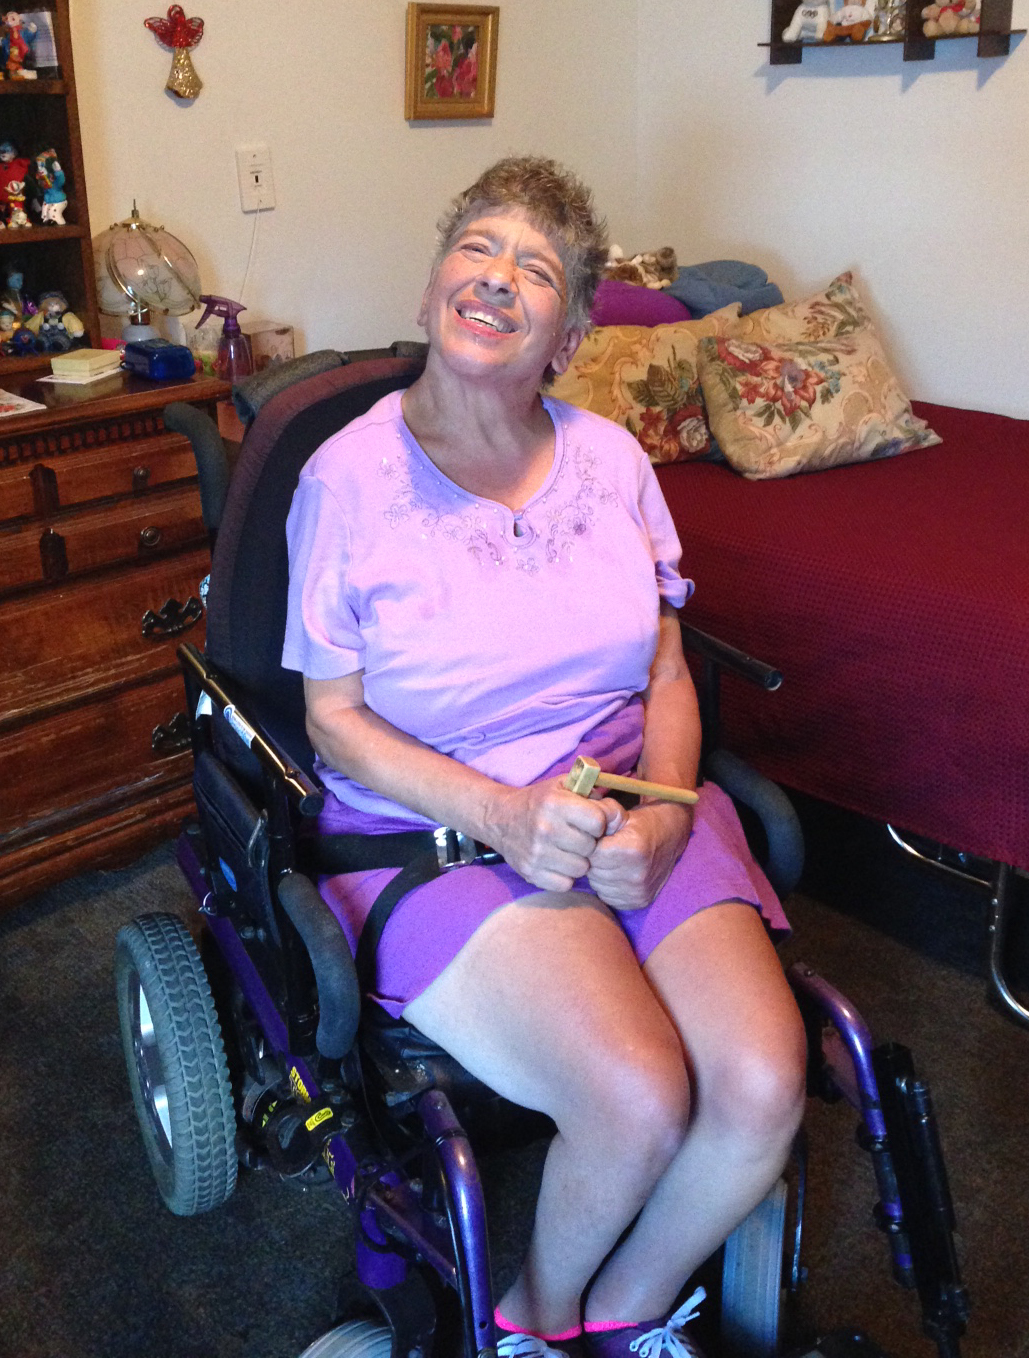 AUCP IS HELPING PEOPLE WITH DISABILITIES LIVE AT HOME.